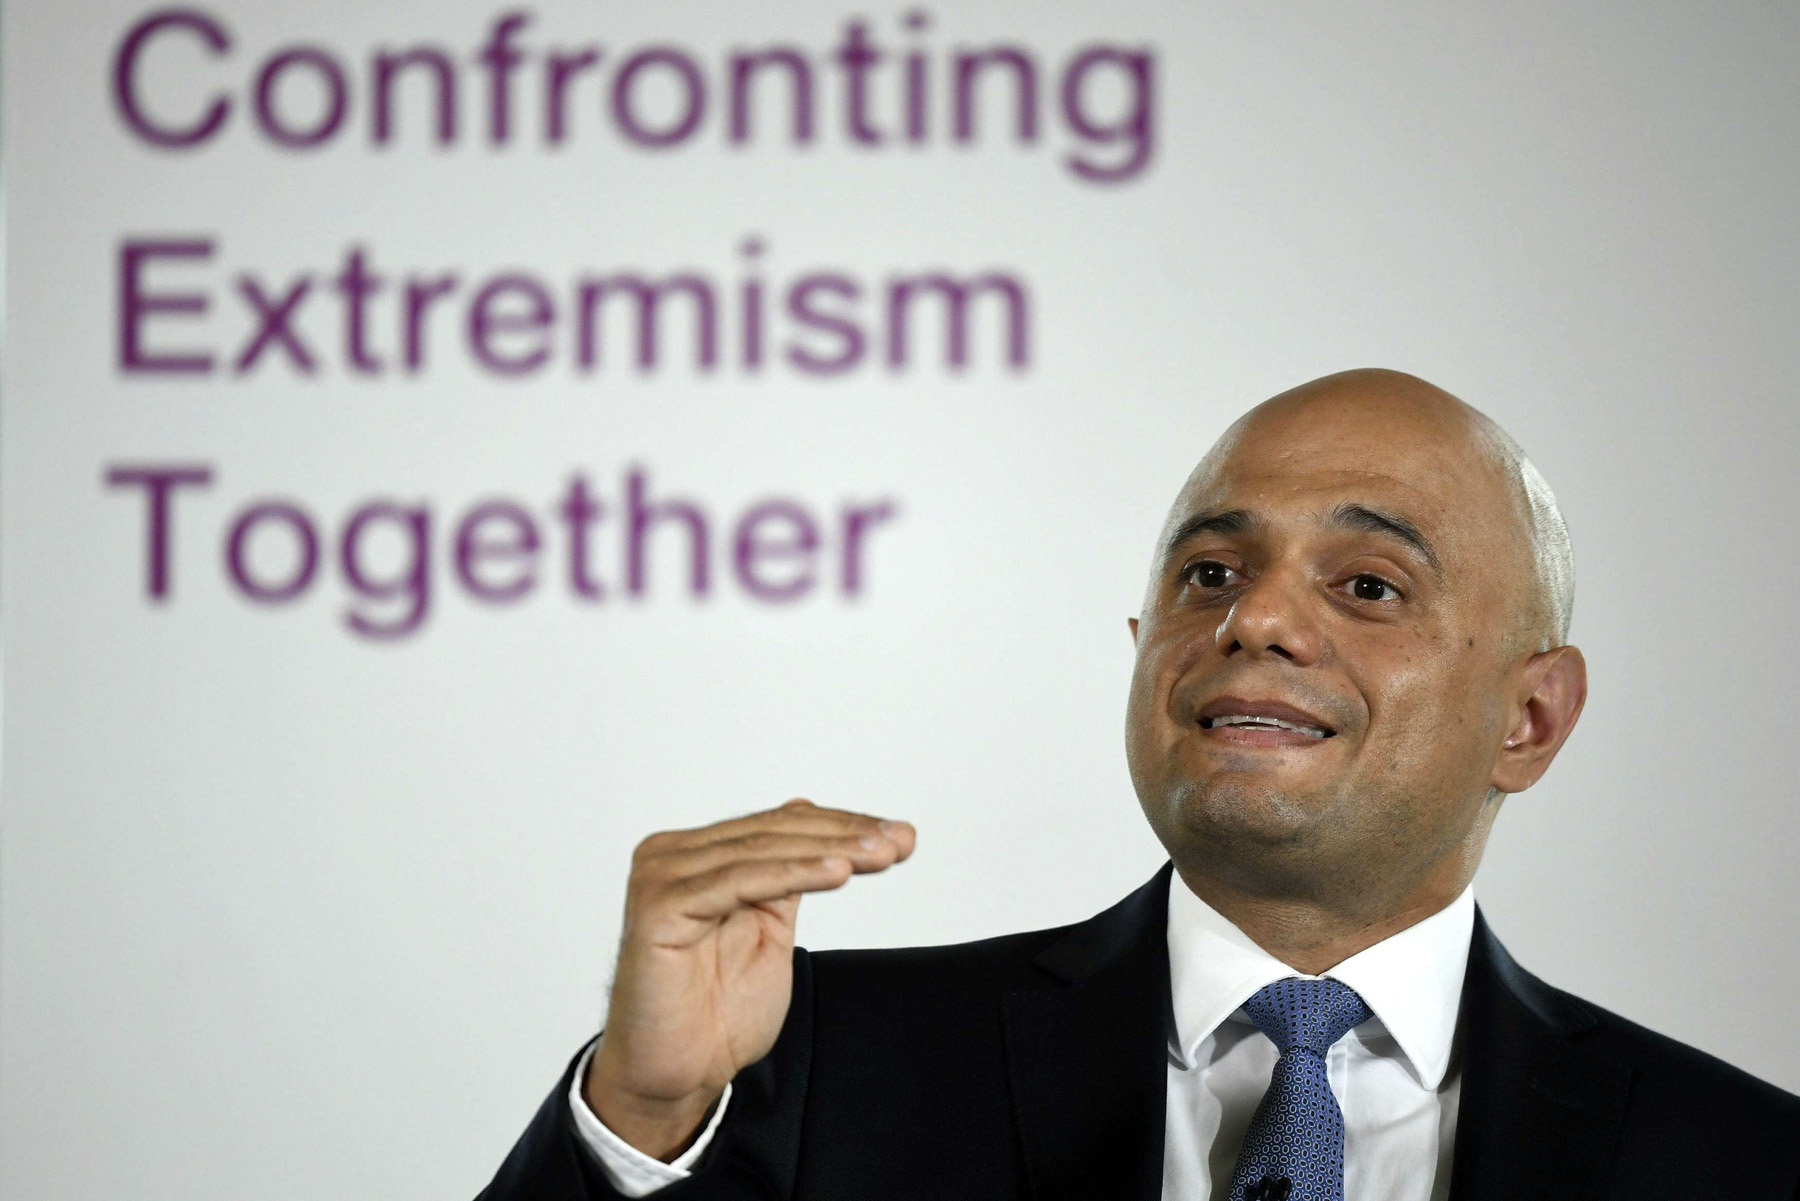 Britain's Home Secretary Sajid Javid makes a speech, in central London, to warn that excessive language is spreading hate and working people into a frenzy. July 19, 2019 (AP)